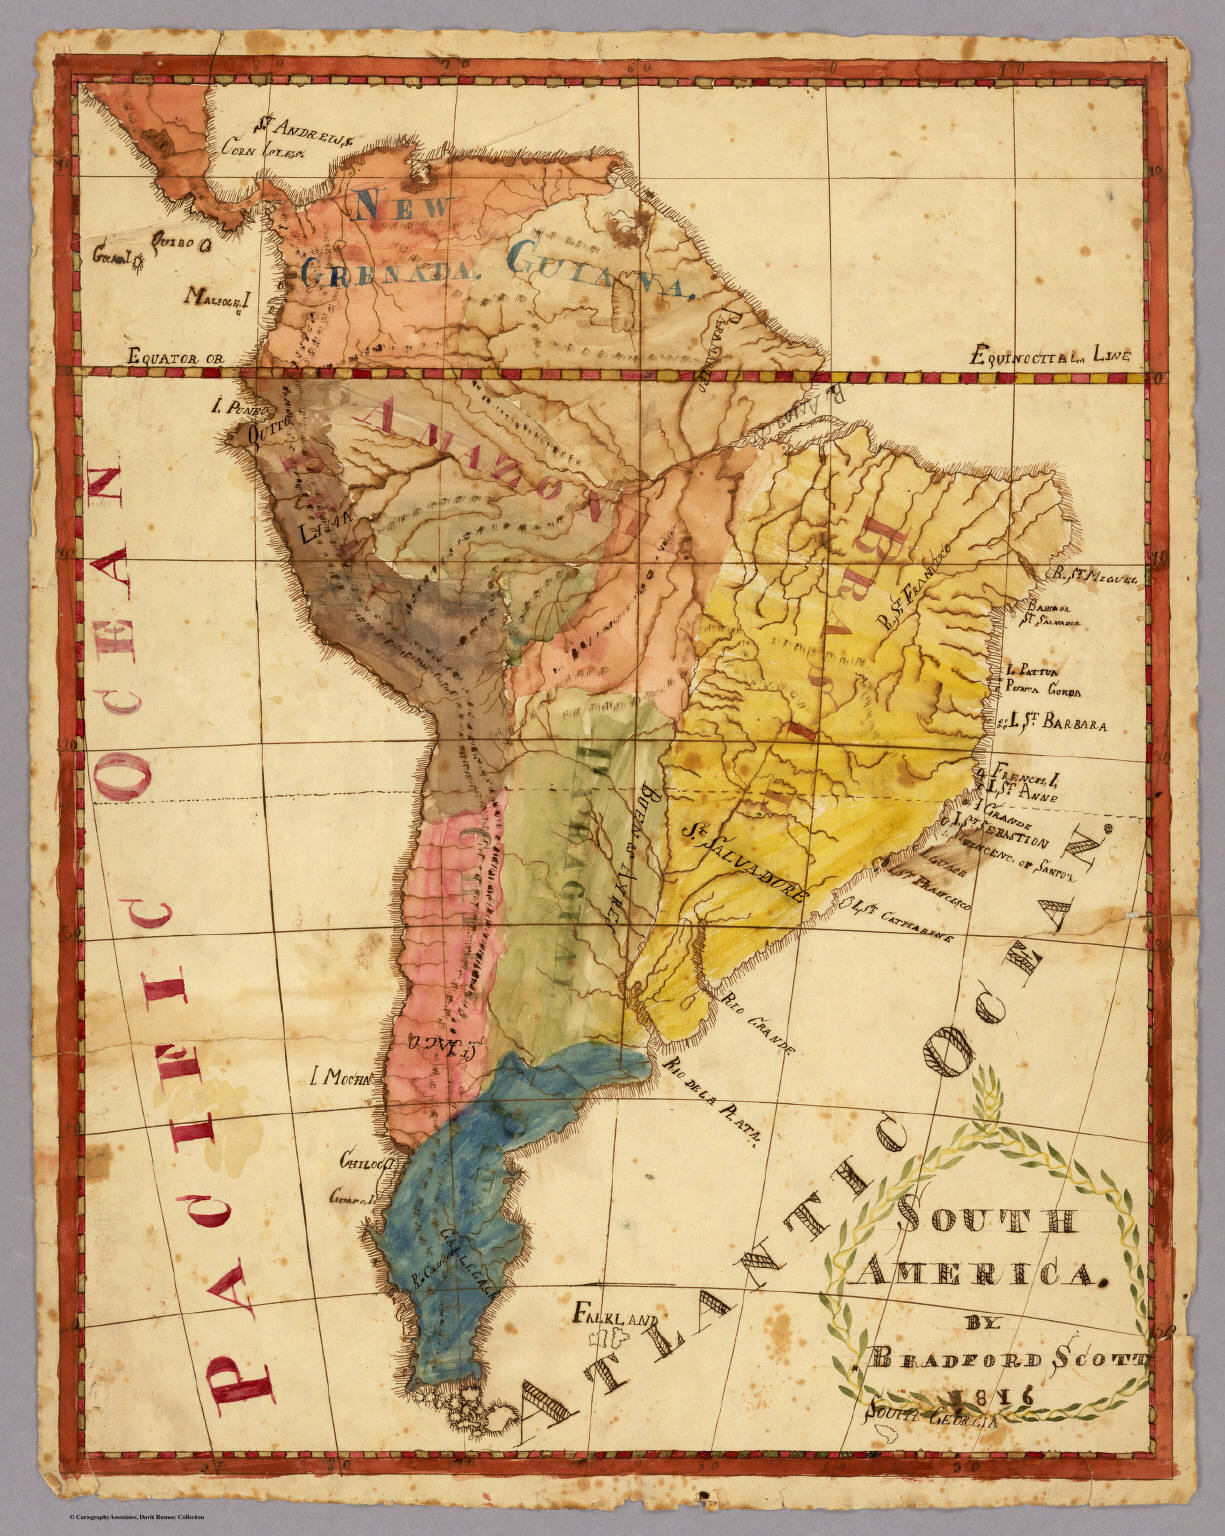 south america david rumsey historical map collection